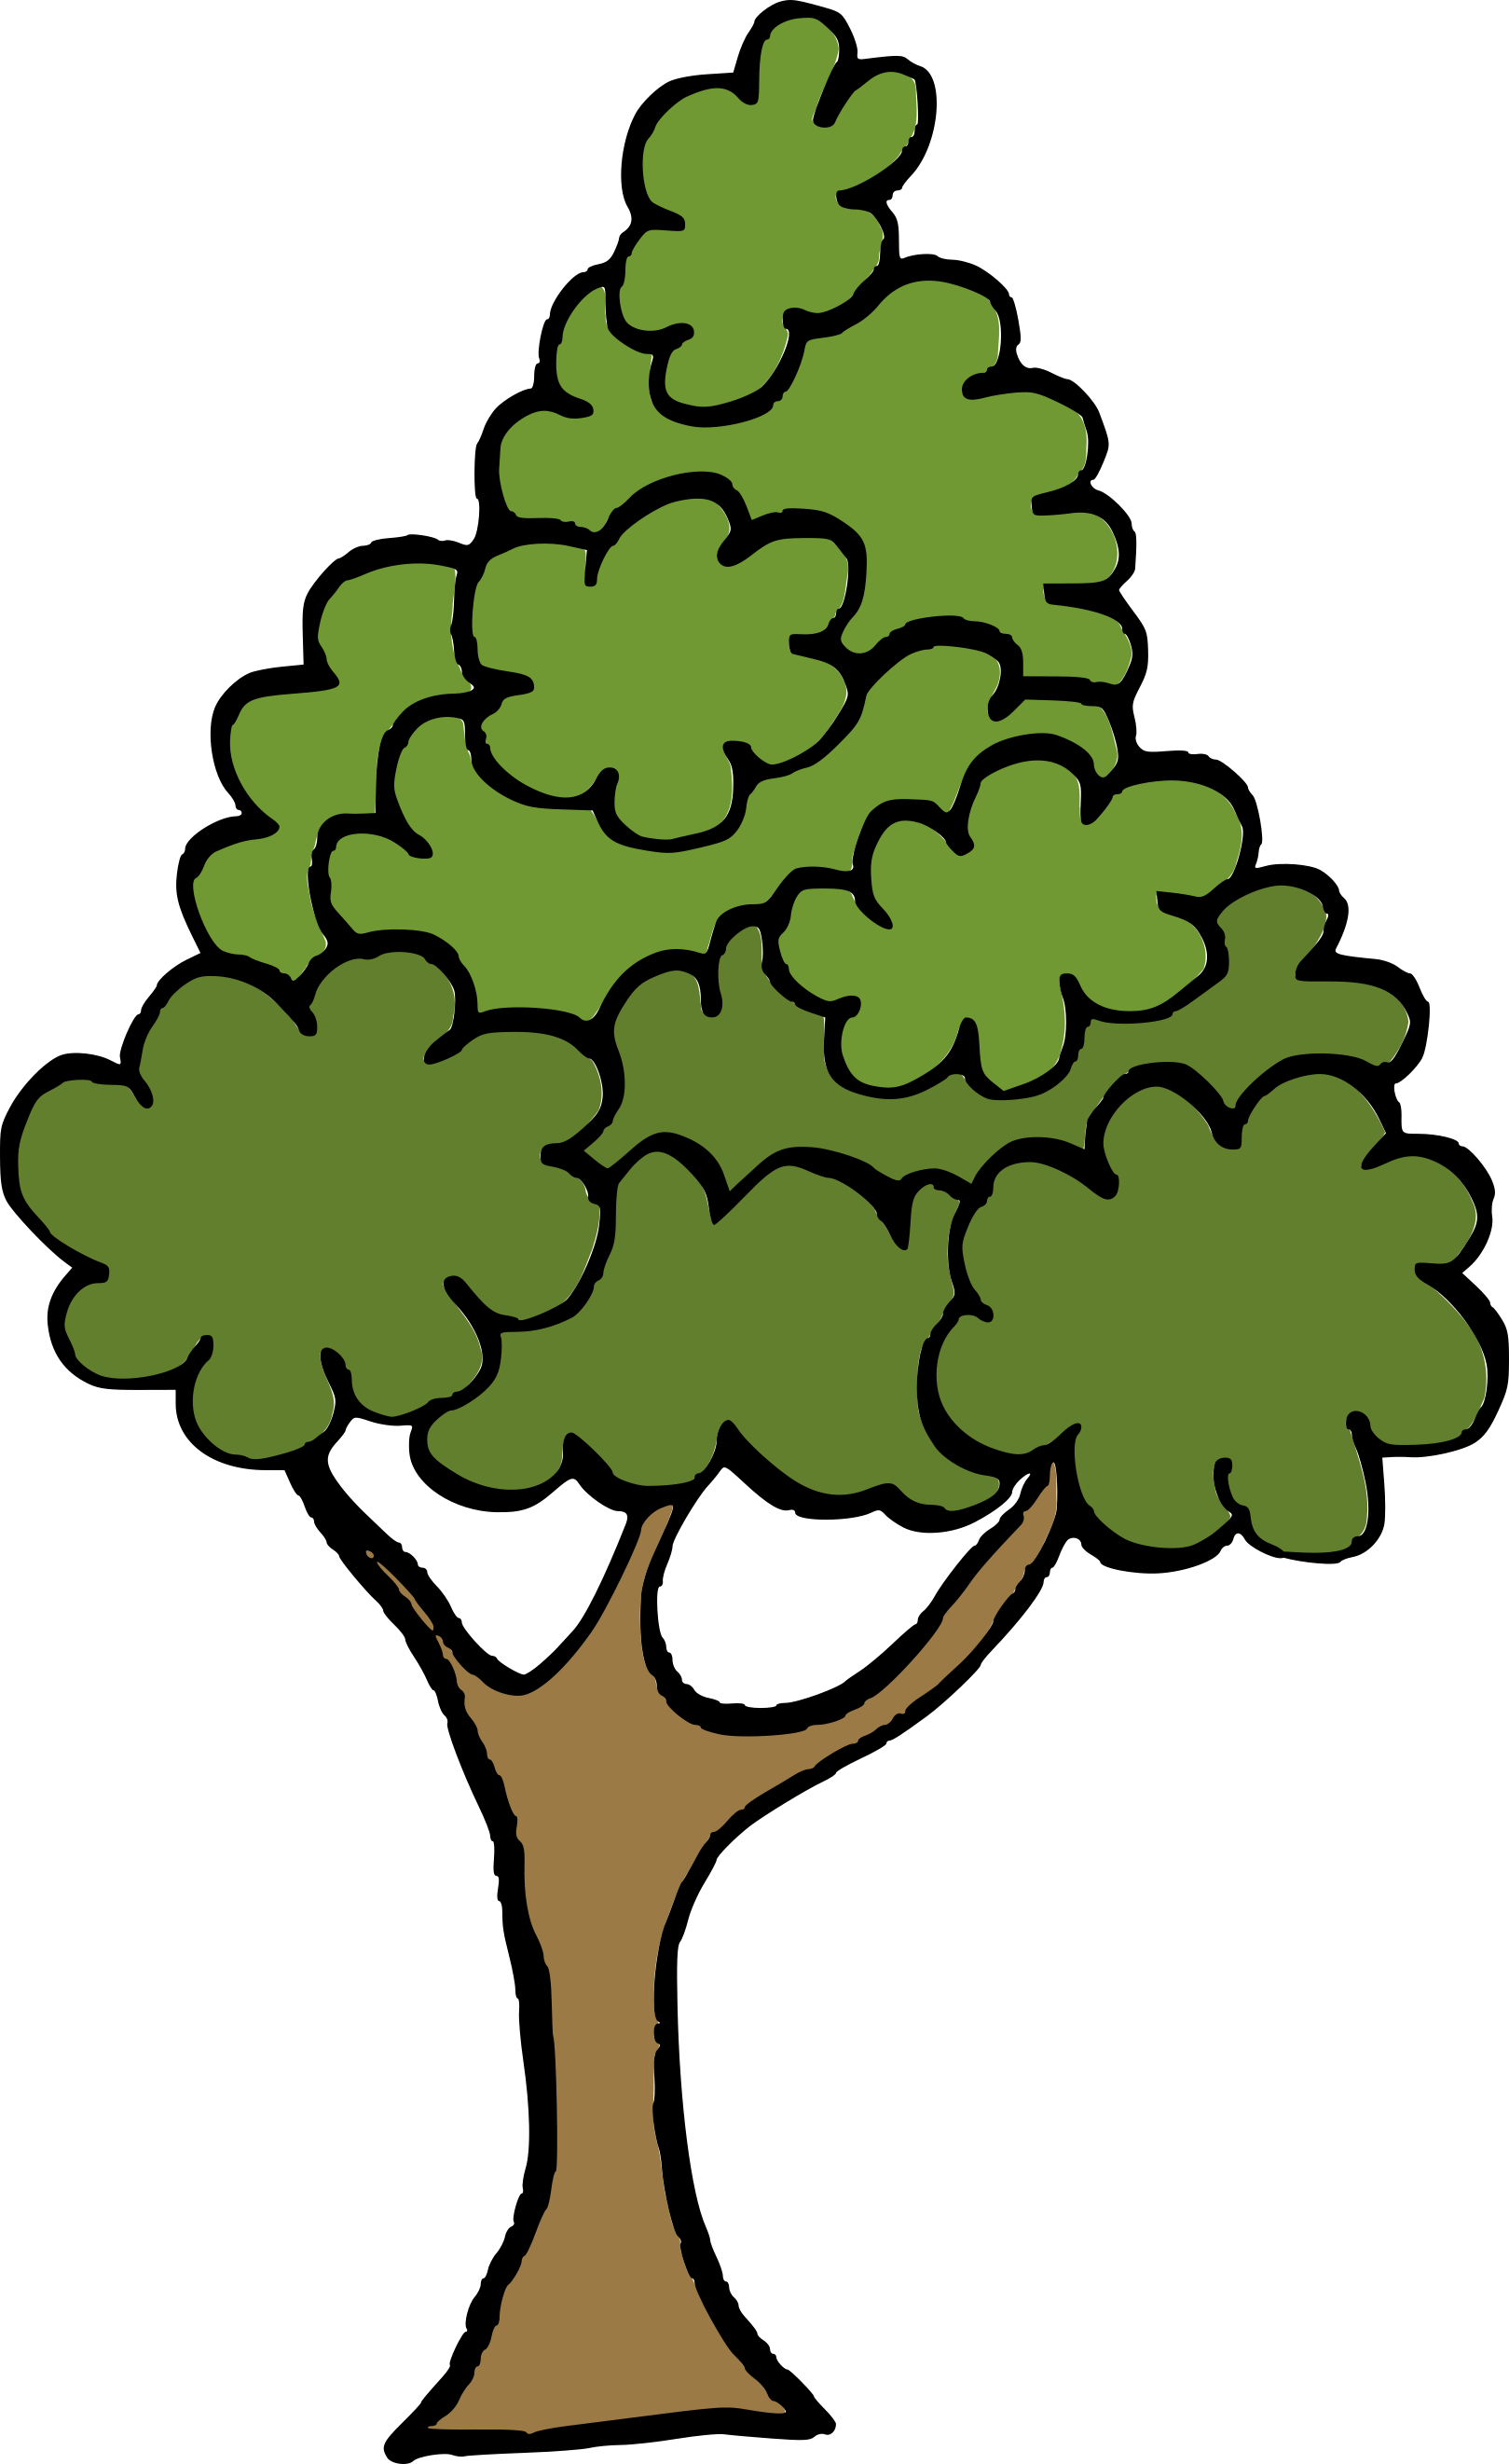 cartoon-tree-6.png